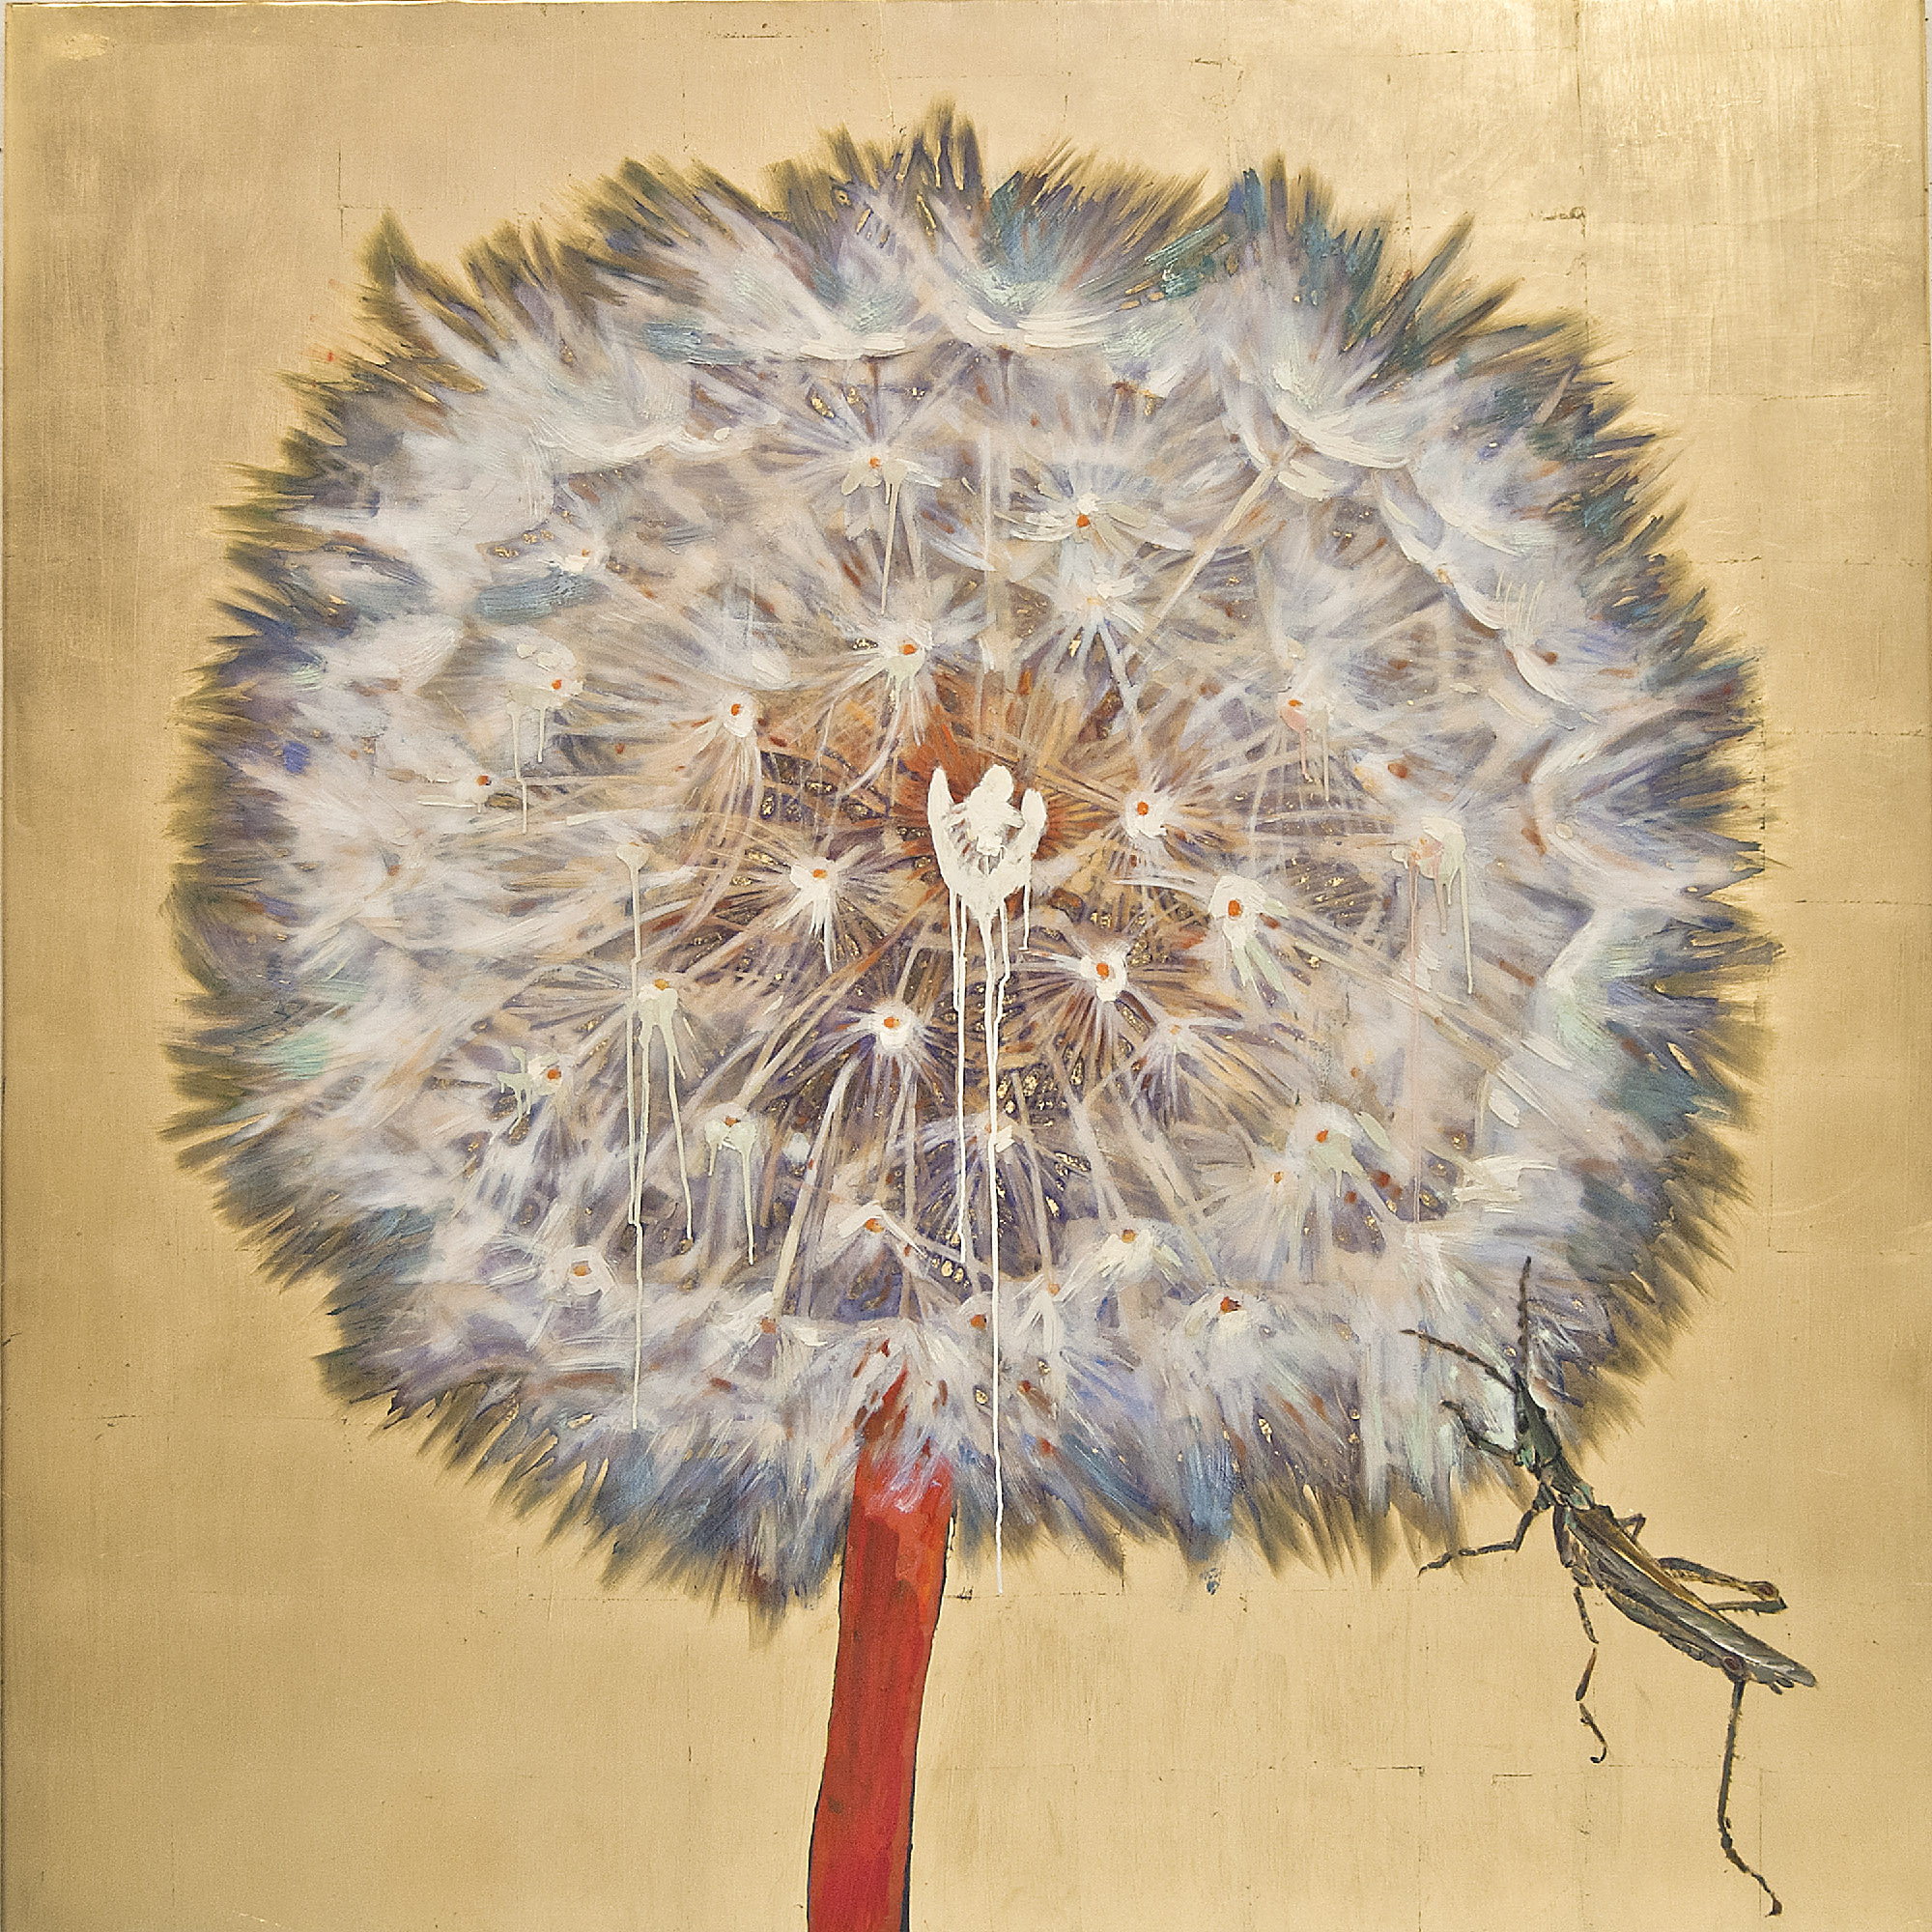 Copy of Hung Liu, Dandelion-Grasshopper, 2017 mixed media 60 × 60 inches